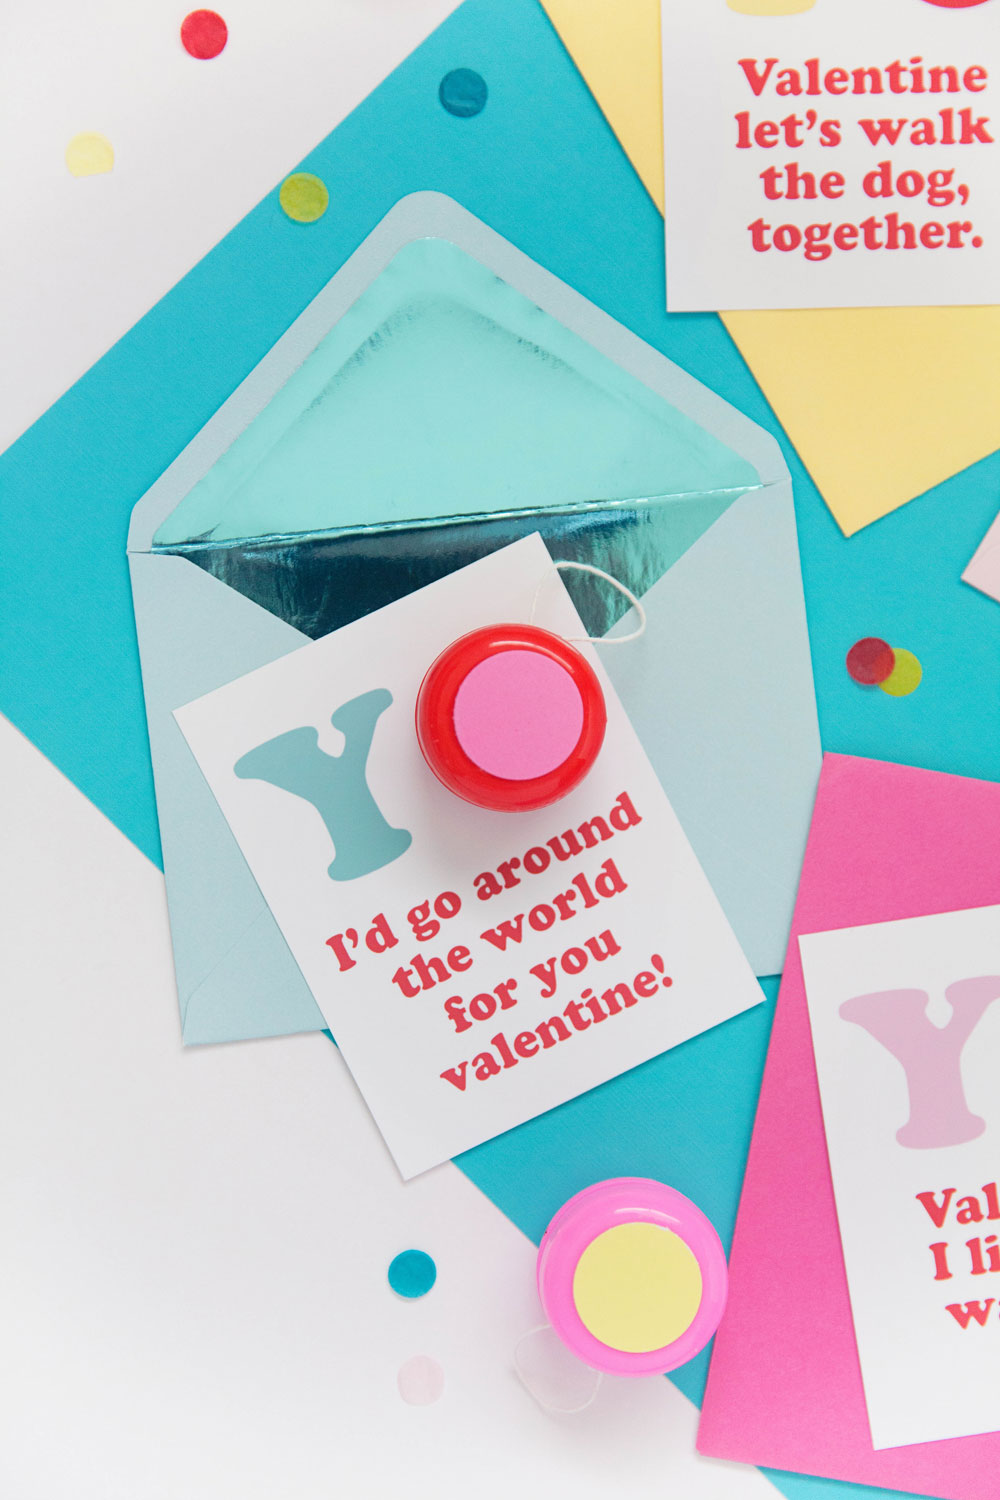 These clever and funny yo-yo valentines are the perfect non candy option his Holiday